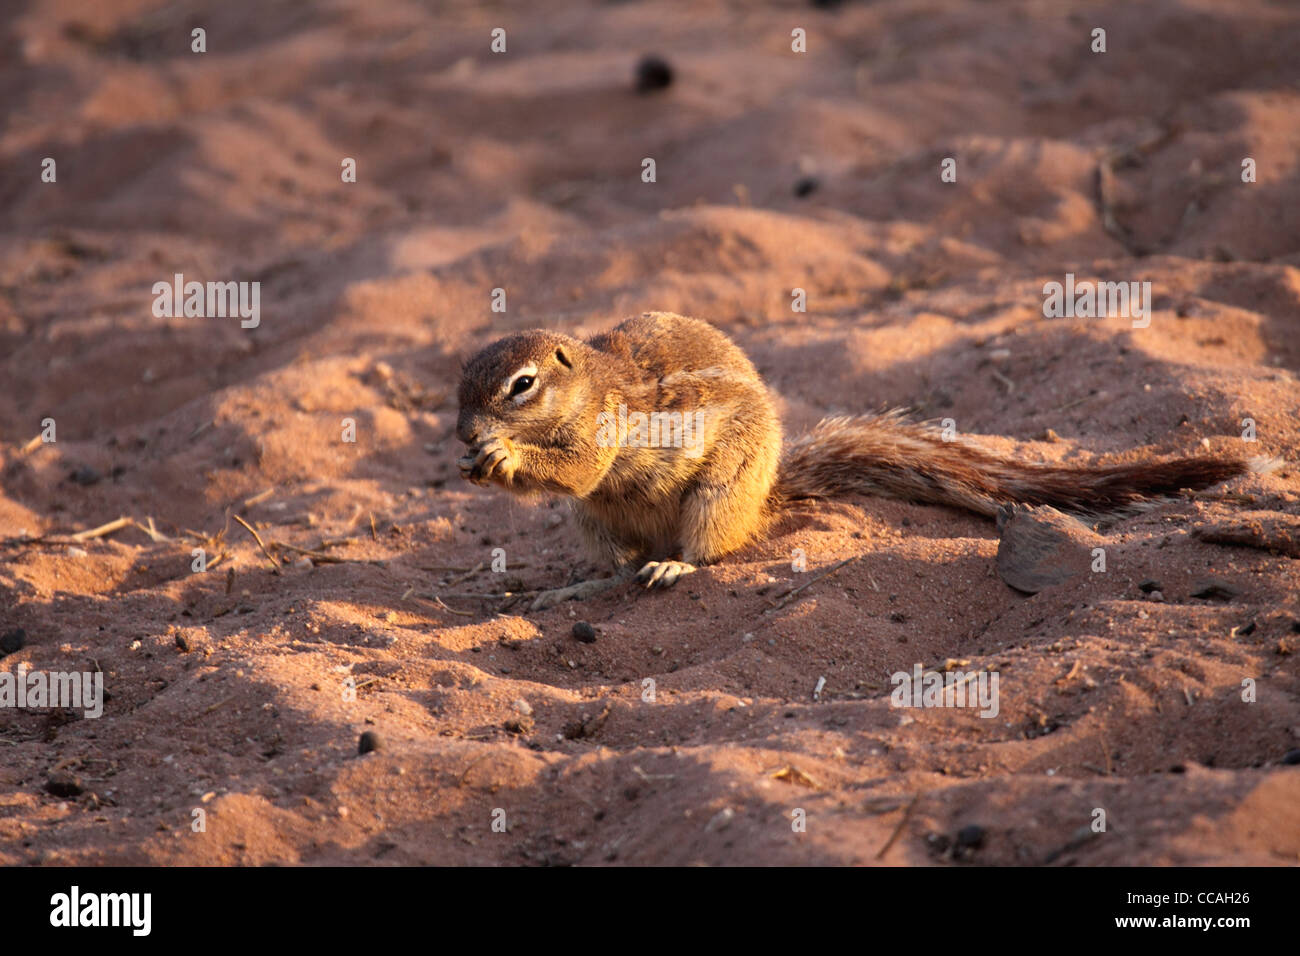 Southern African ground squirrel feeding in desert - Stock Image